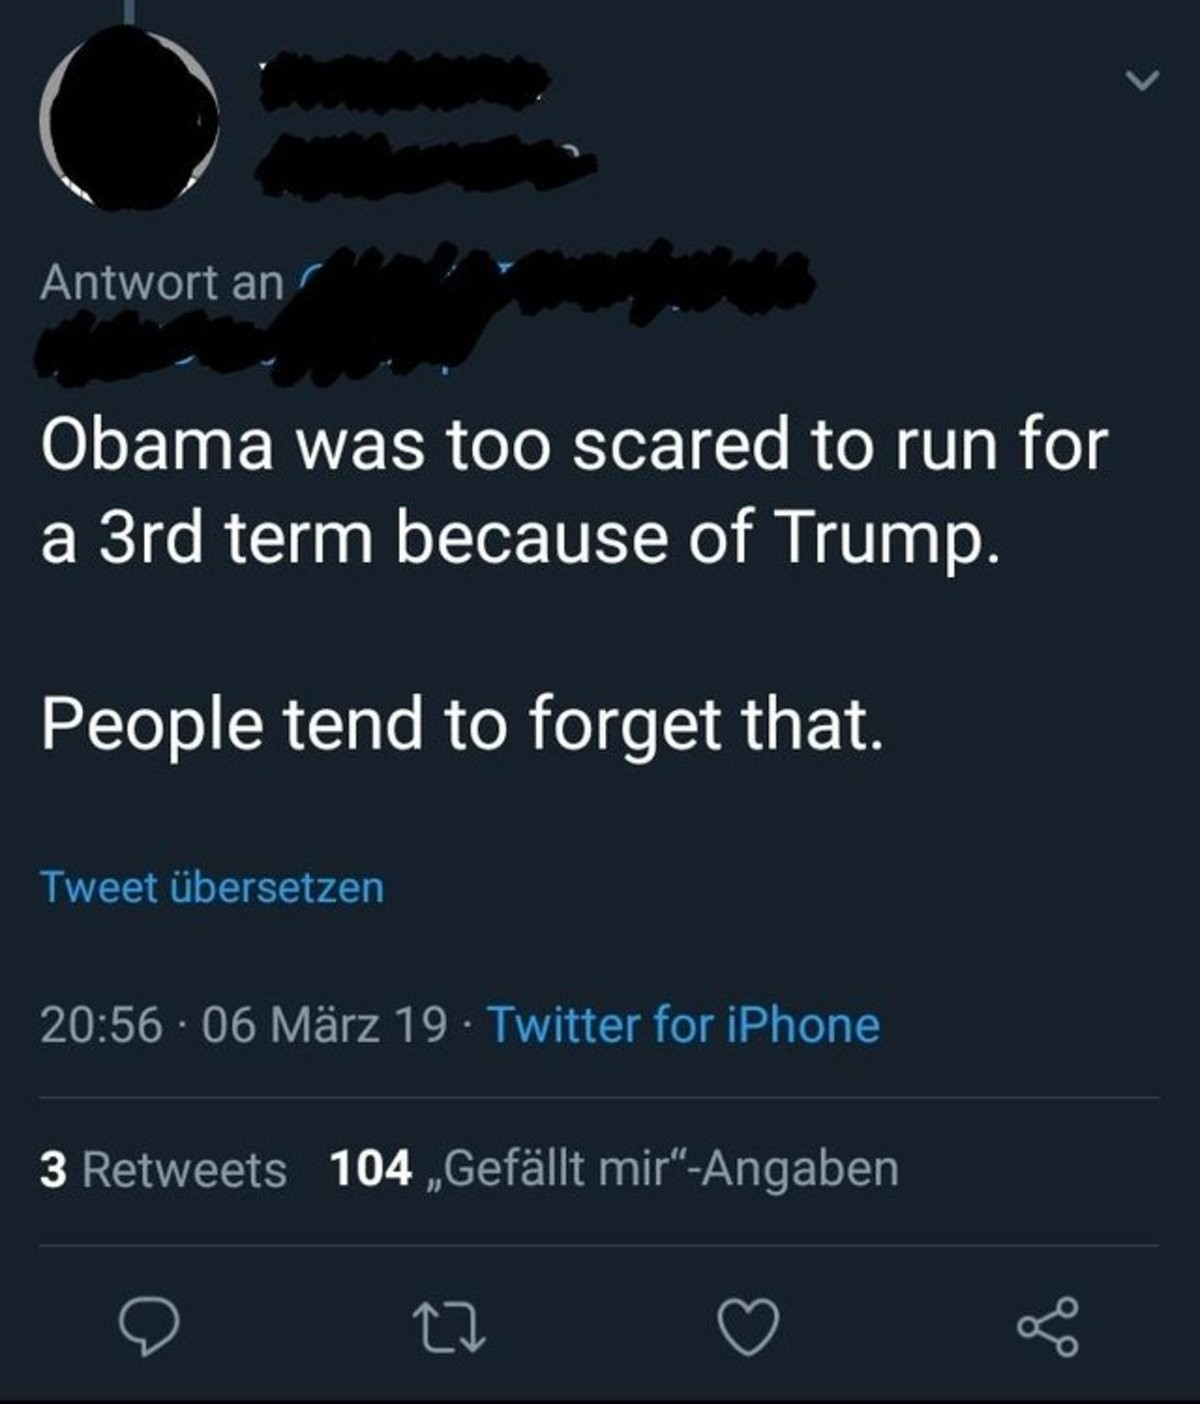 the real reason OBAMA didnt run again. .. Keep in mind Obama had the chaos emeralds. If it weren't for Trump, he'd definitely have forced that 3rd term.